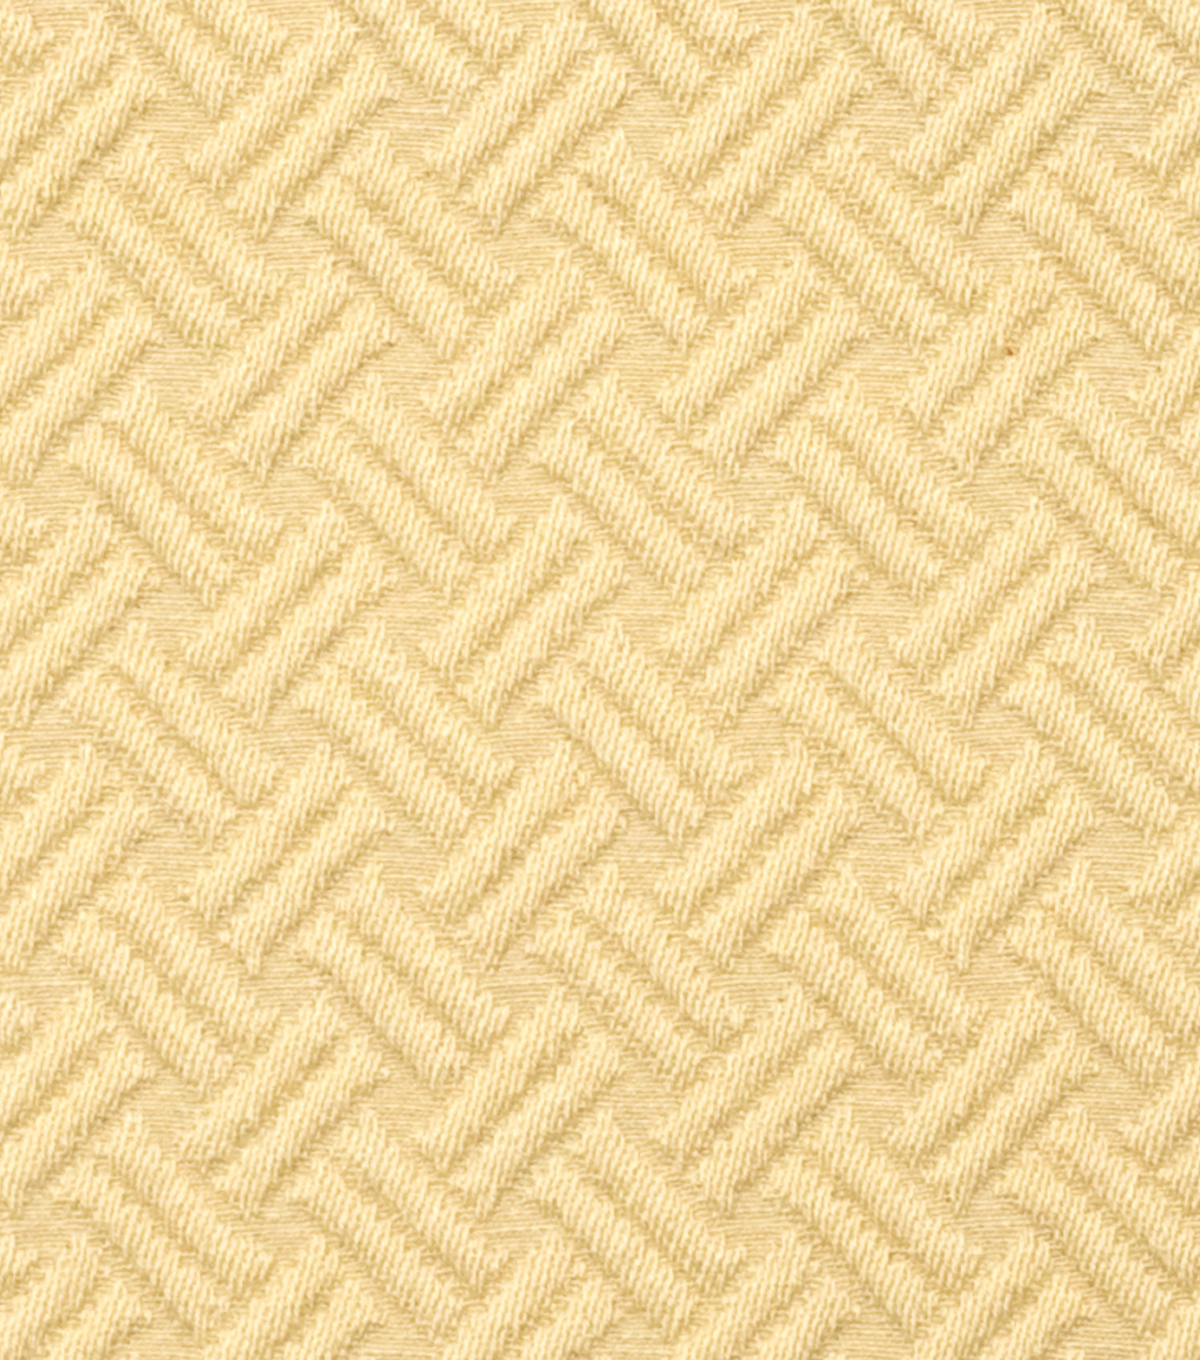 Home Decor 8\u0022x8\u0022 Fabric Swatch-Jaclyn Smith Lane-Natural